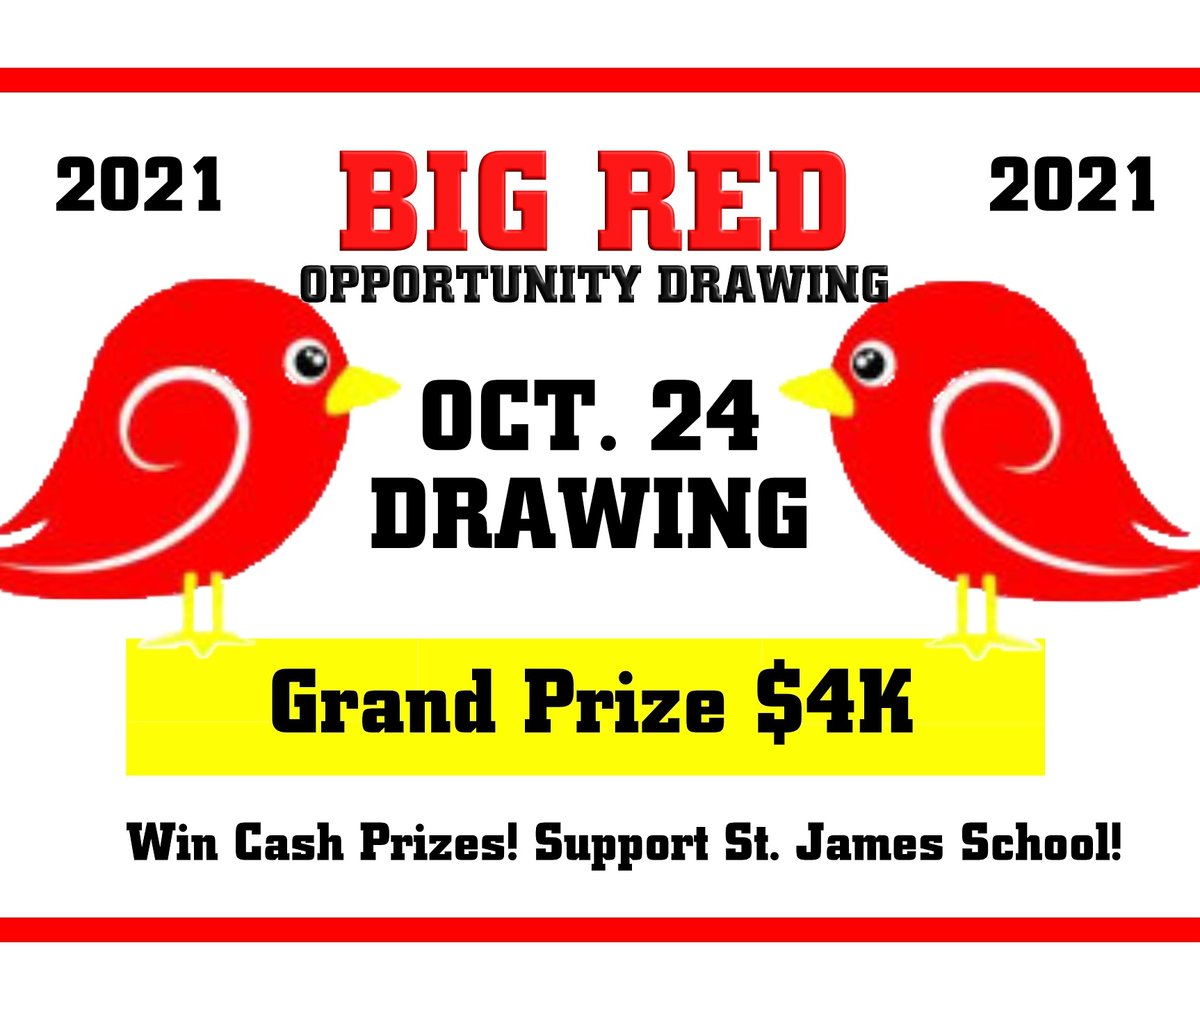 2021 Big Red Opportunity Drawing